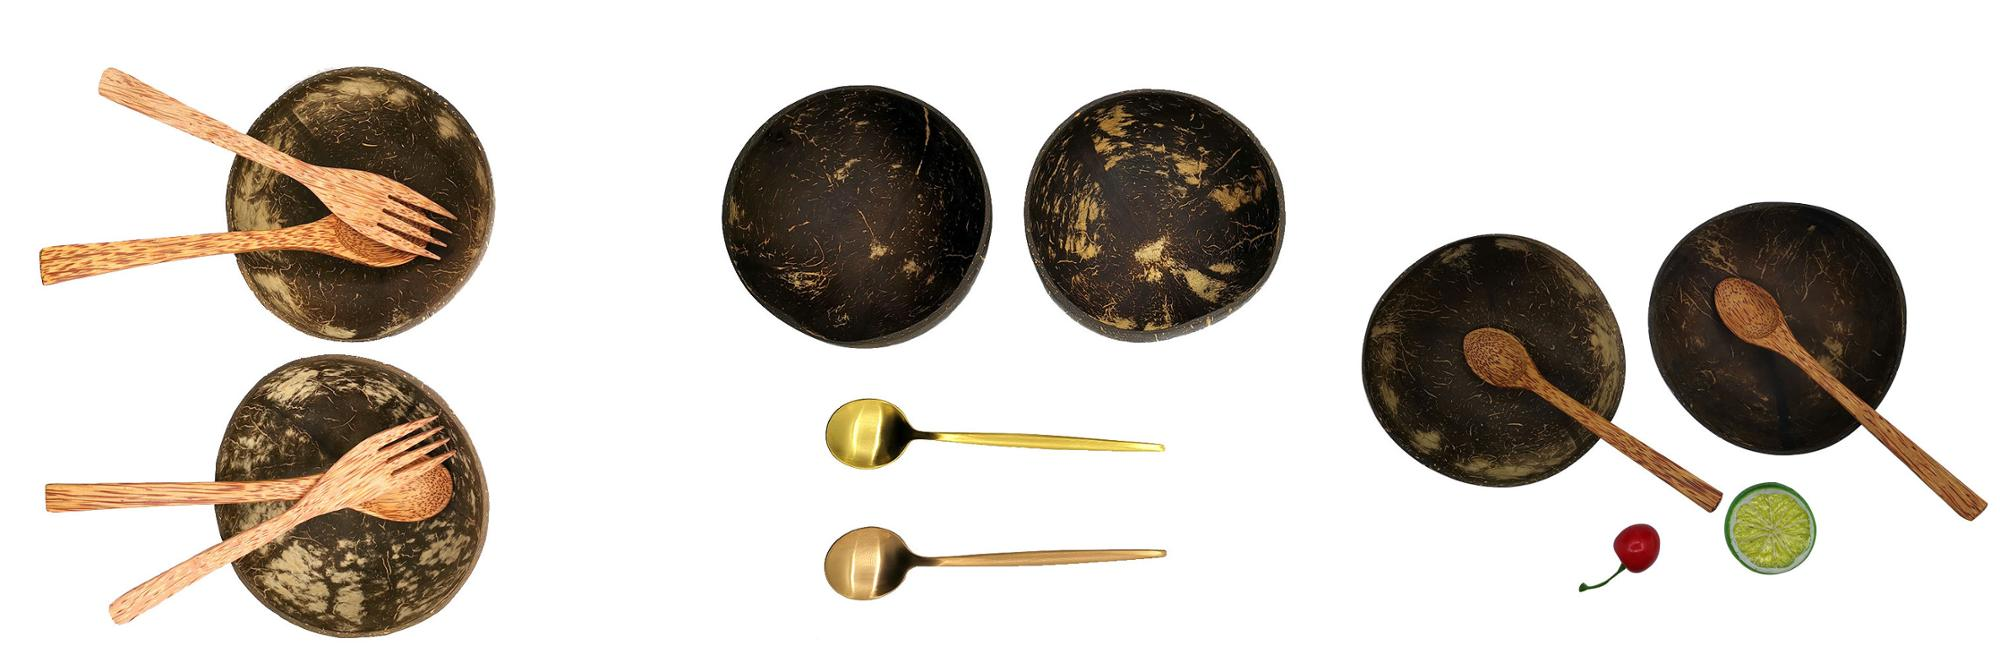 2pc bowl spoon.jpg